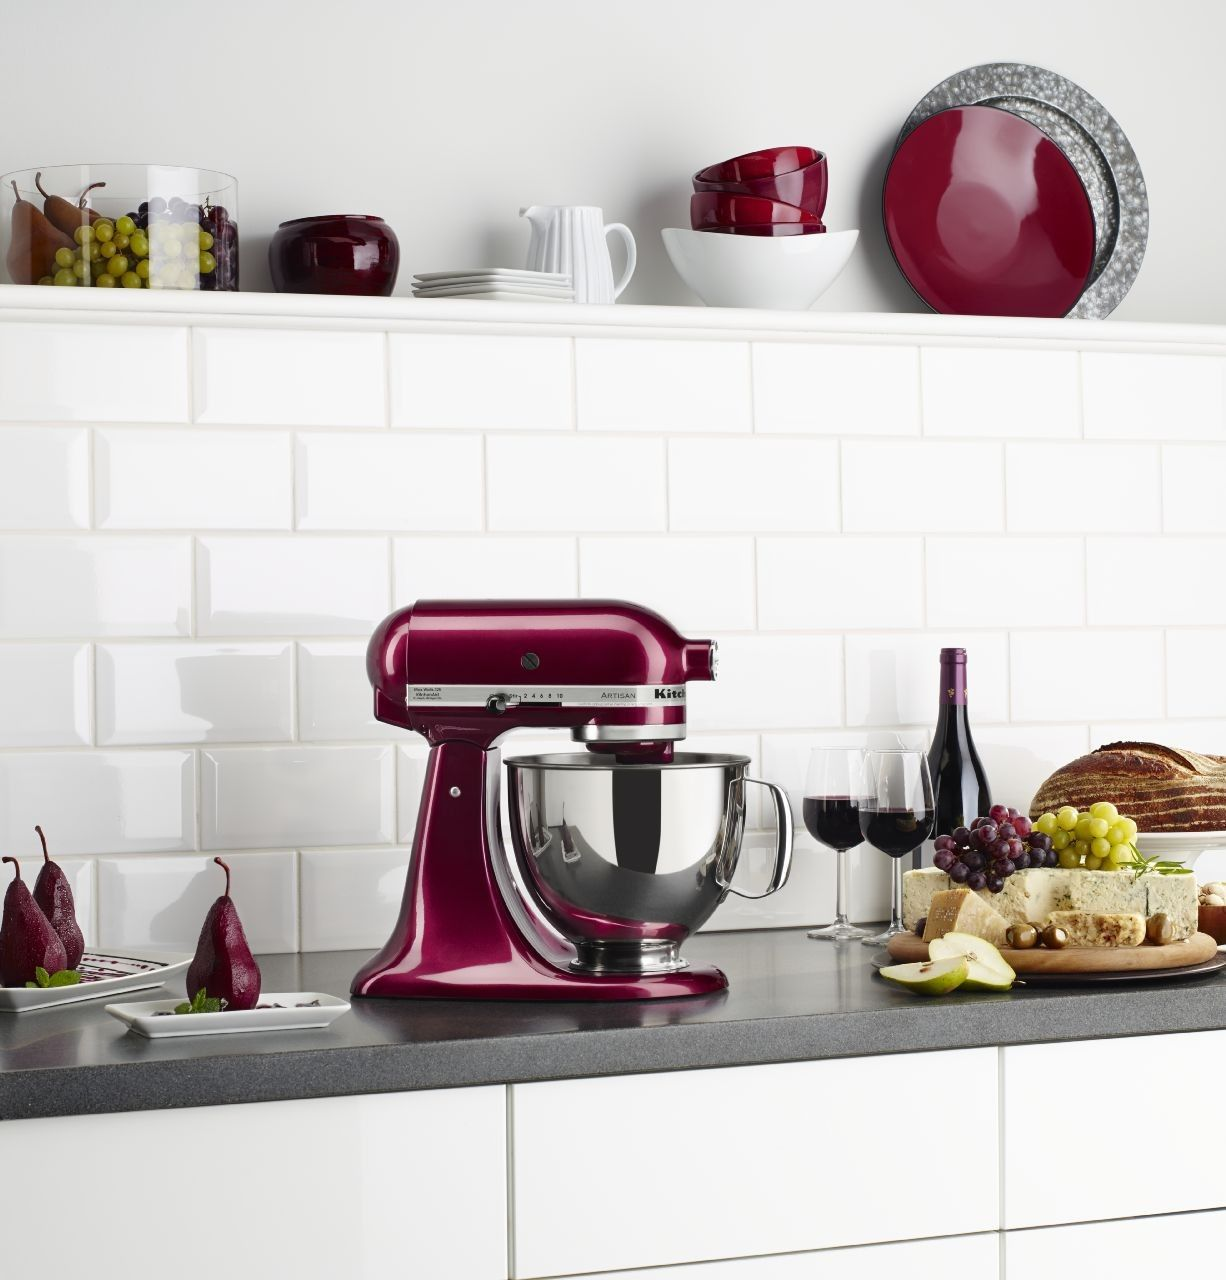 SHOP KITCHEN AID   This KitchenAid Artisan Mixer Is In The Ever Popular  Color, Bordeaux